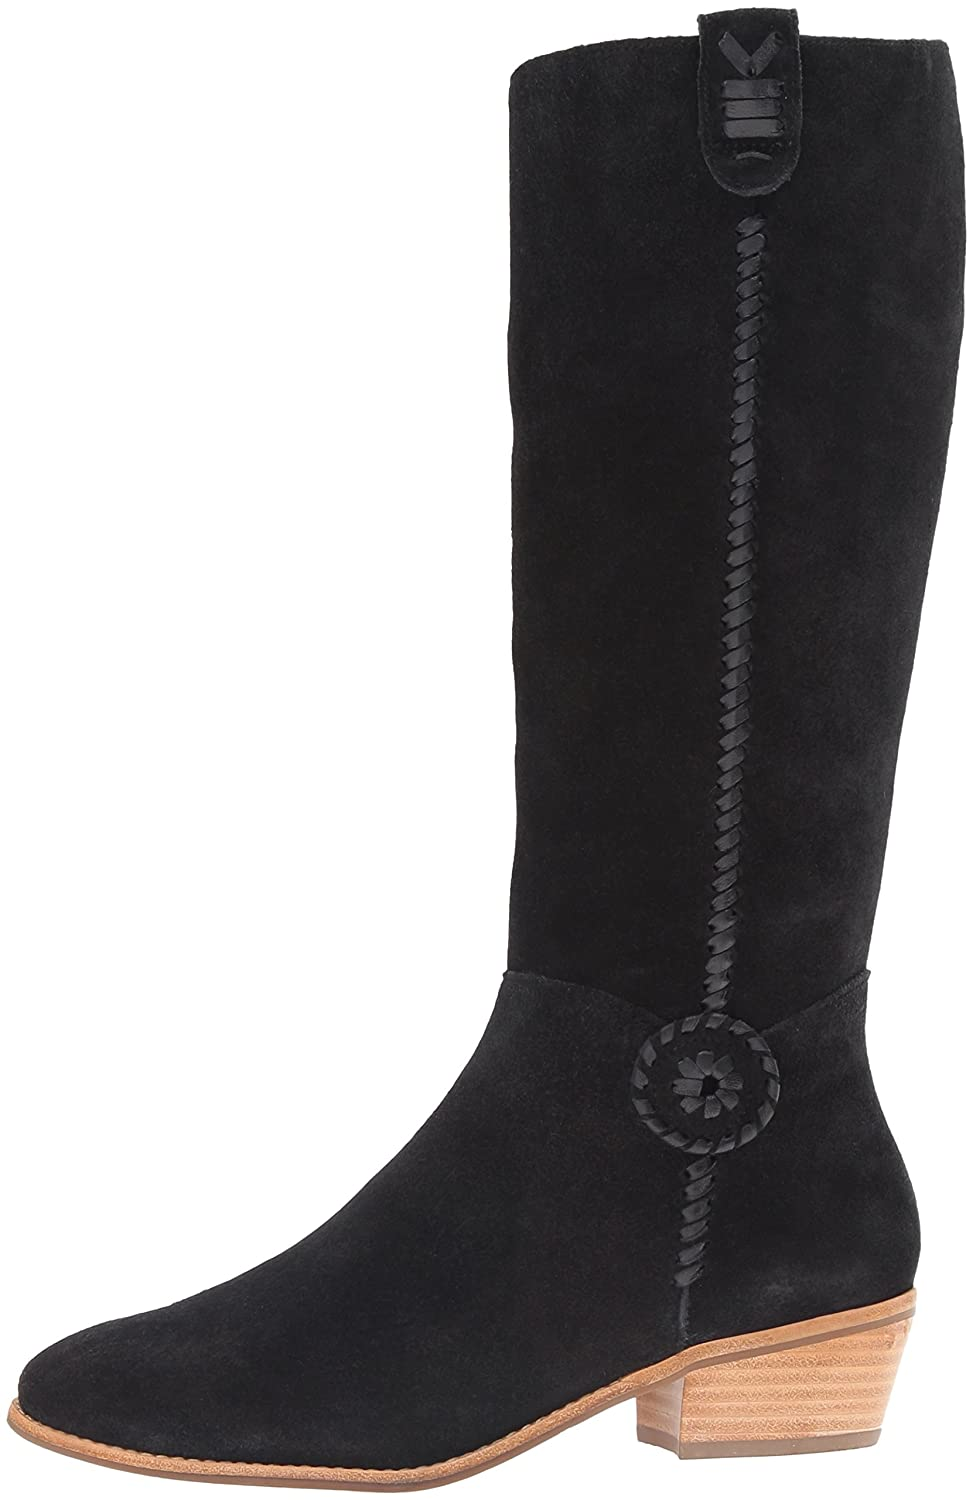 Jack Rogers Women's Sawyer Rain US|Black Boot B01DCSHPH2 9 M US|Black Rain Suede 647115